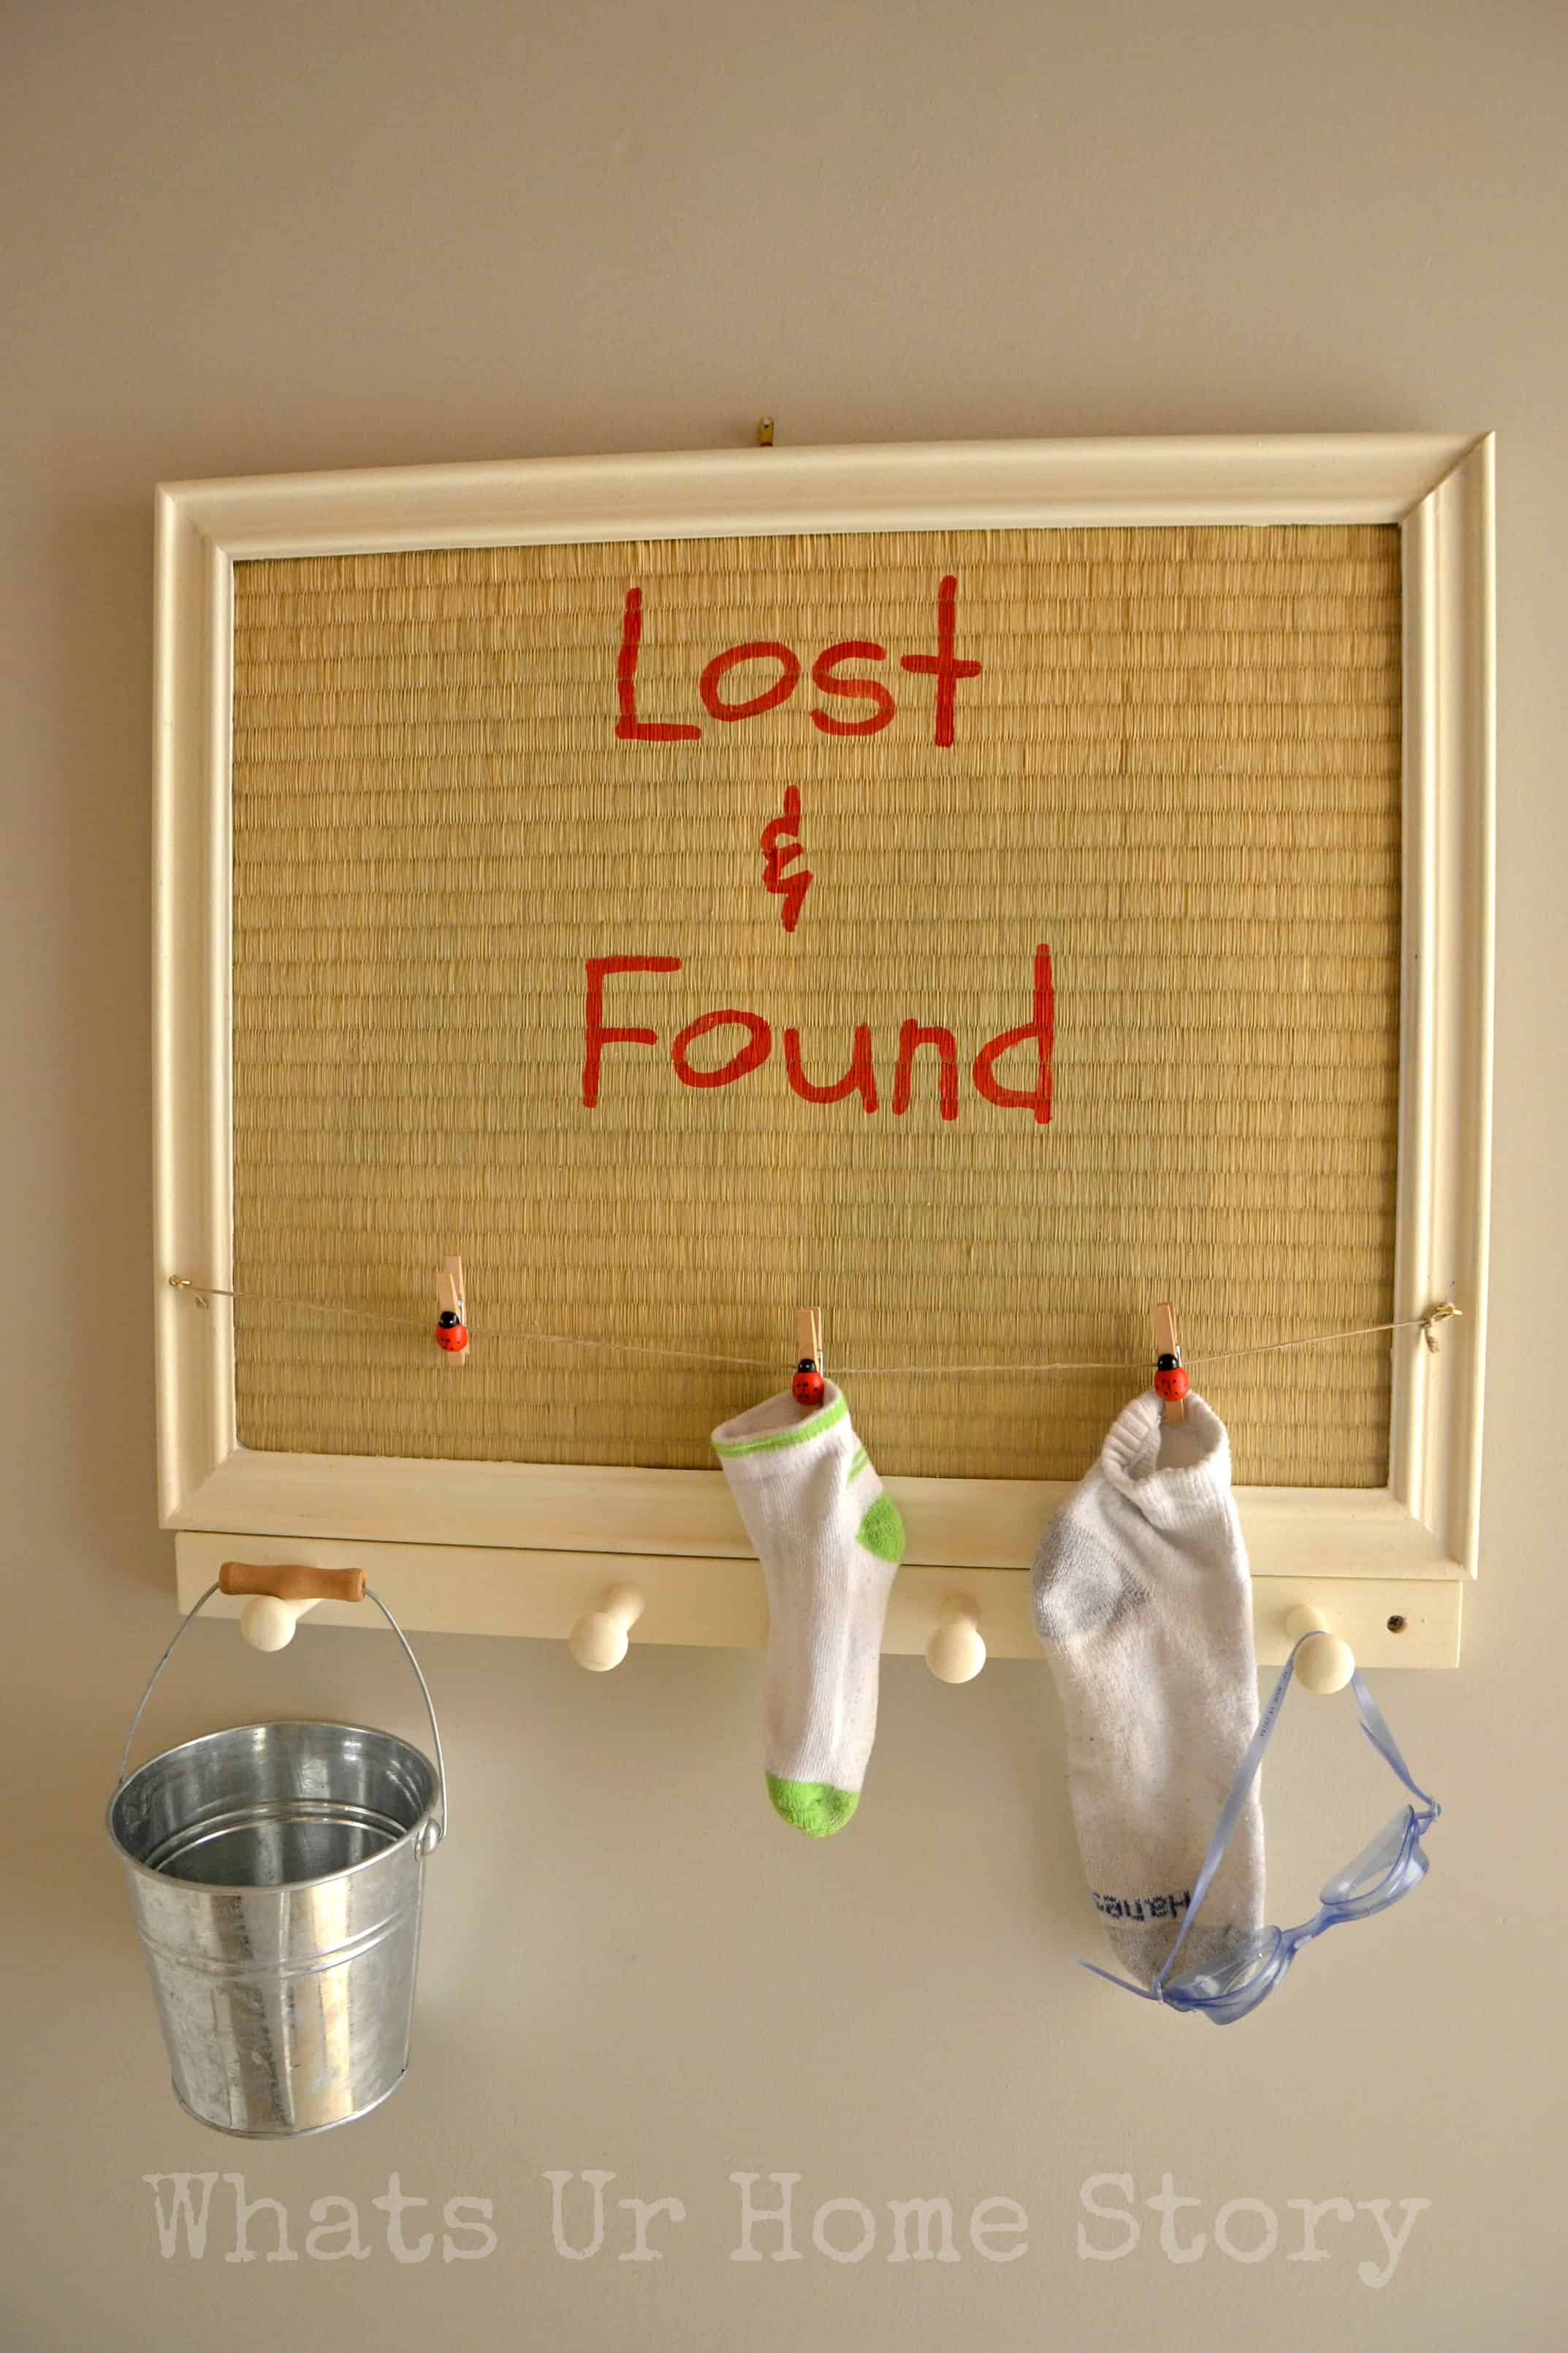 Laundry room lost and found